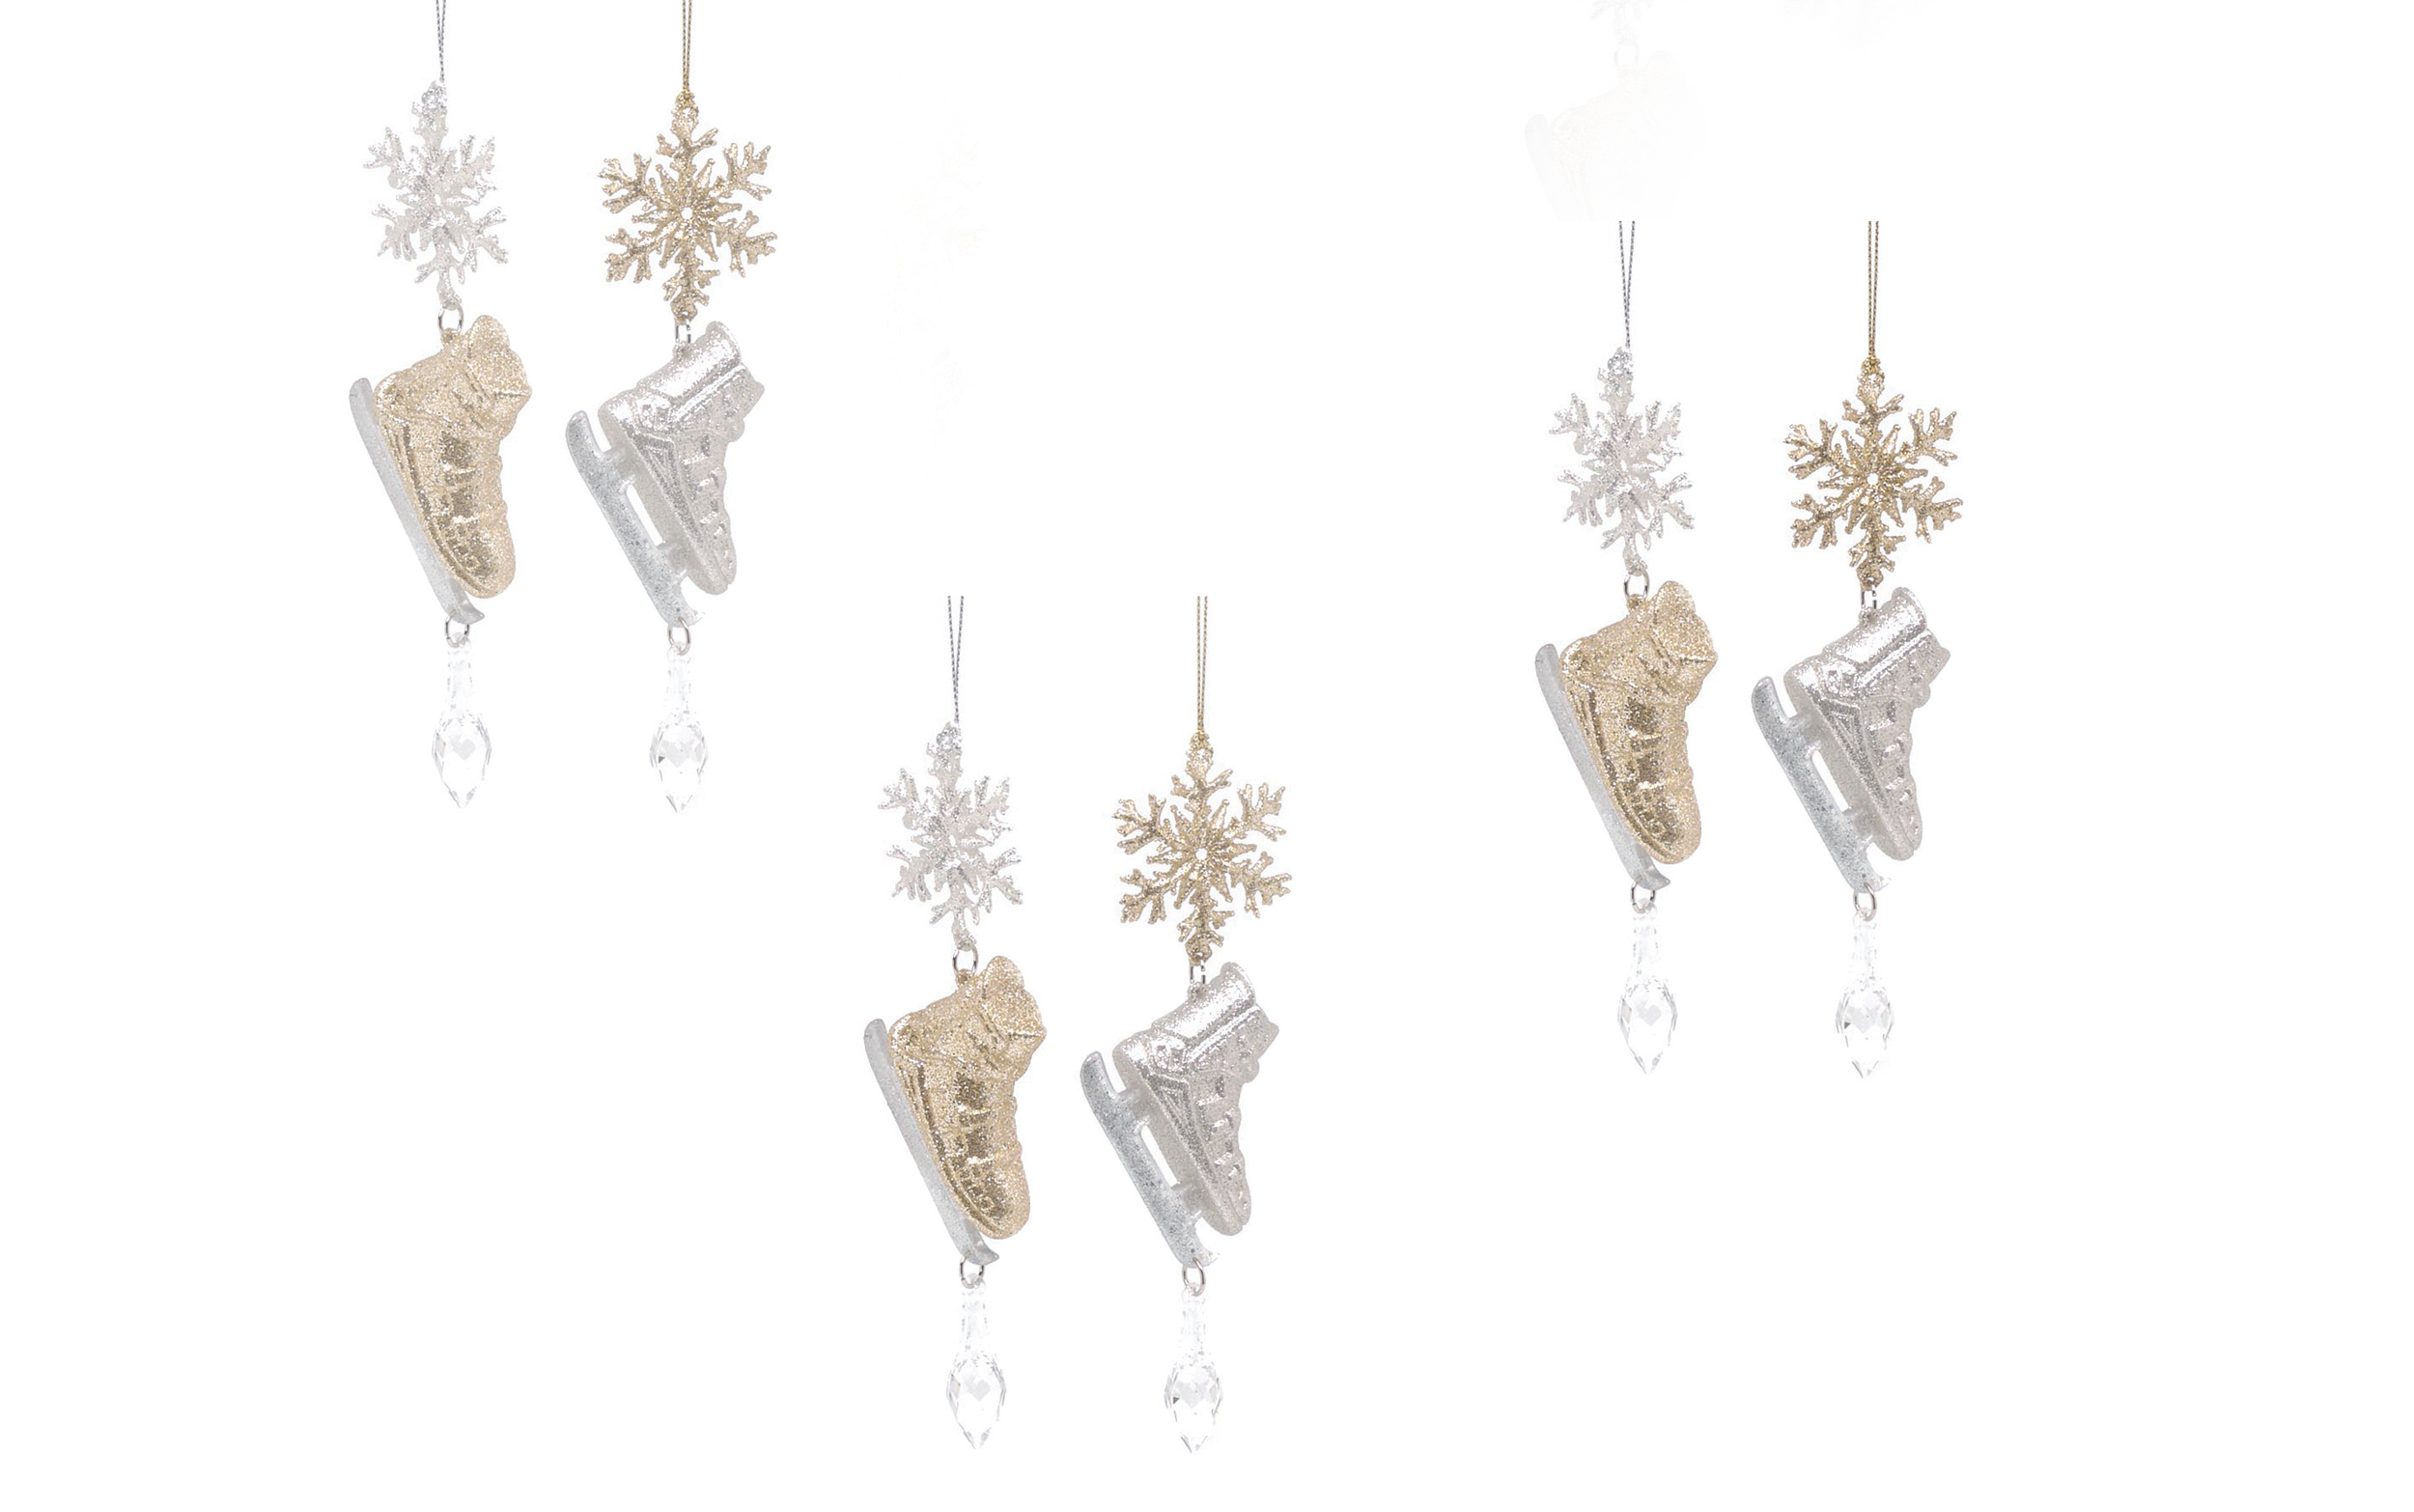 6 X Large Ice Skate Skaing Boots Hanging Baubles Christmas Tree Decorations